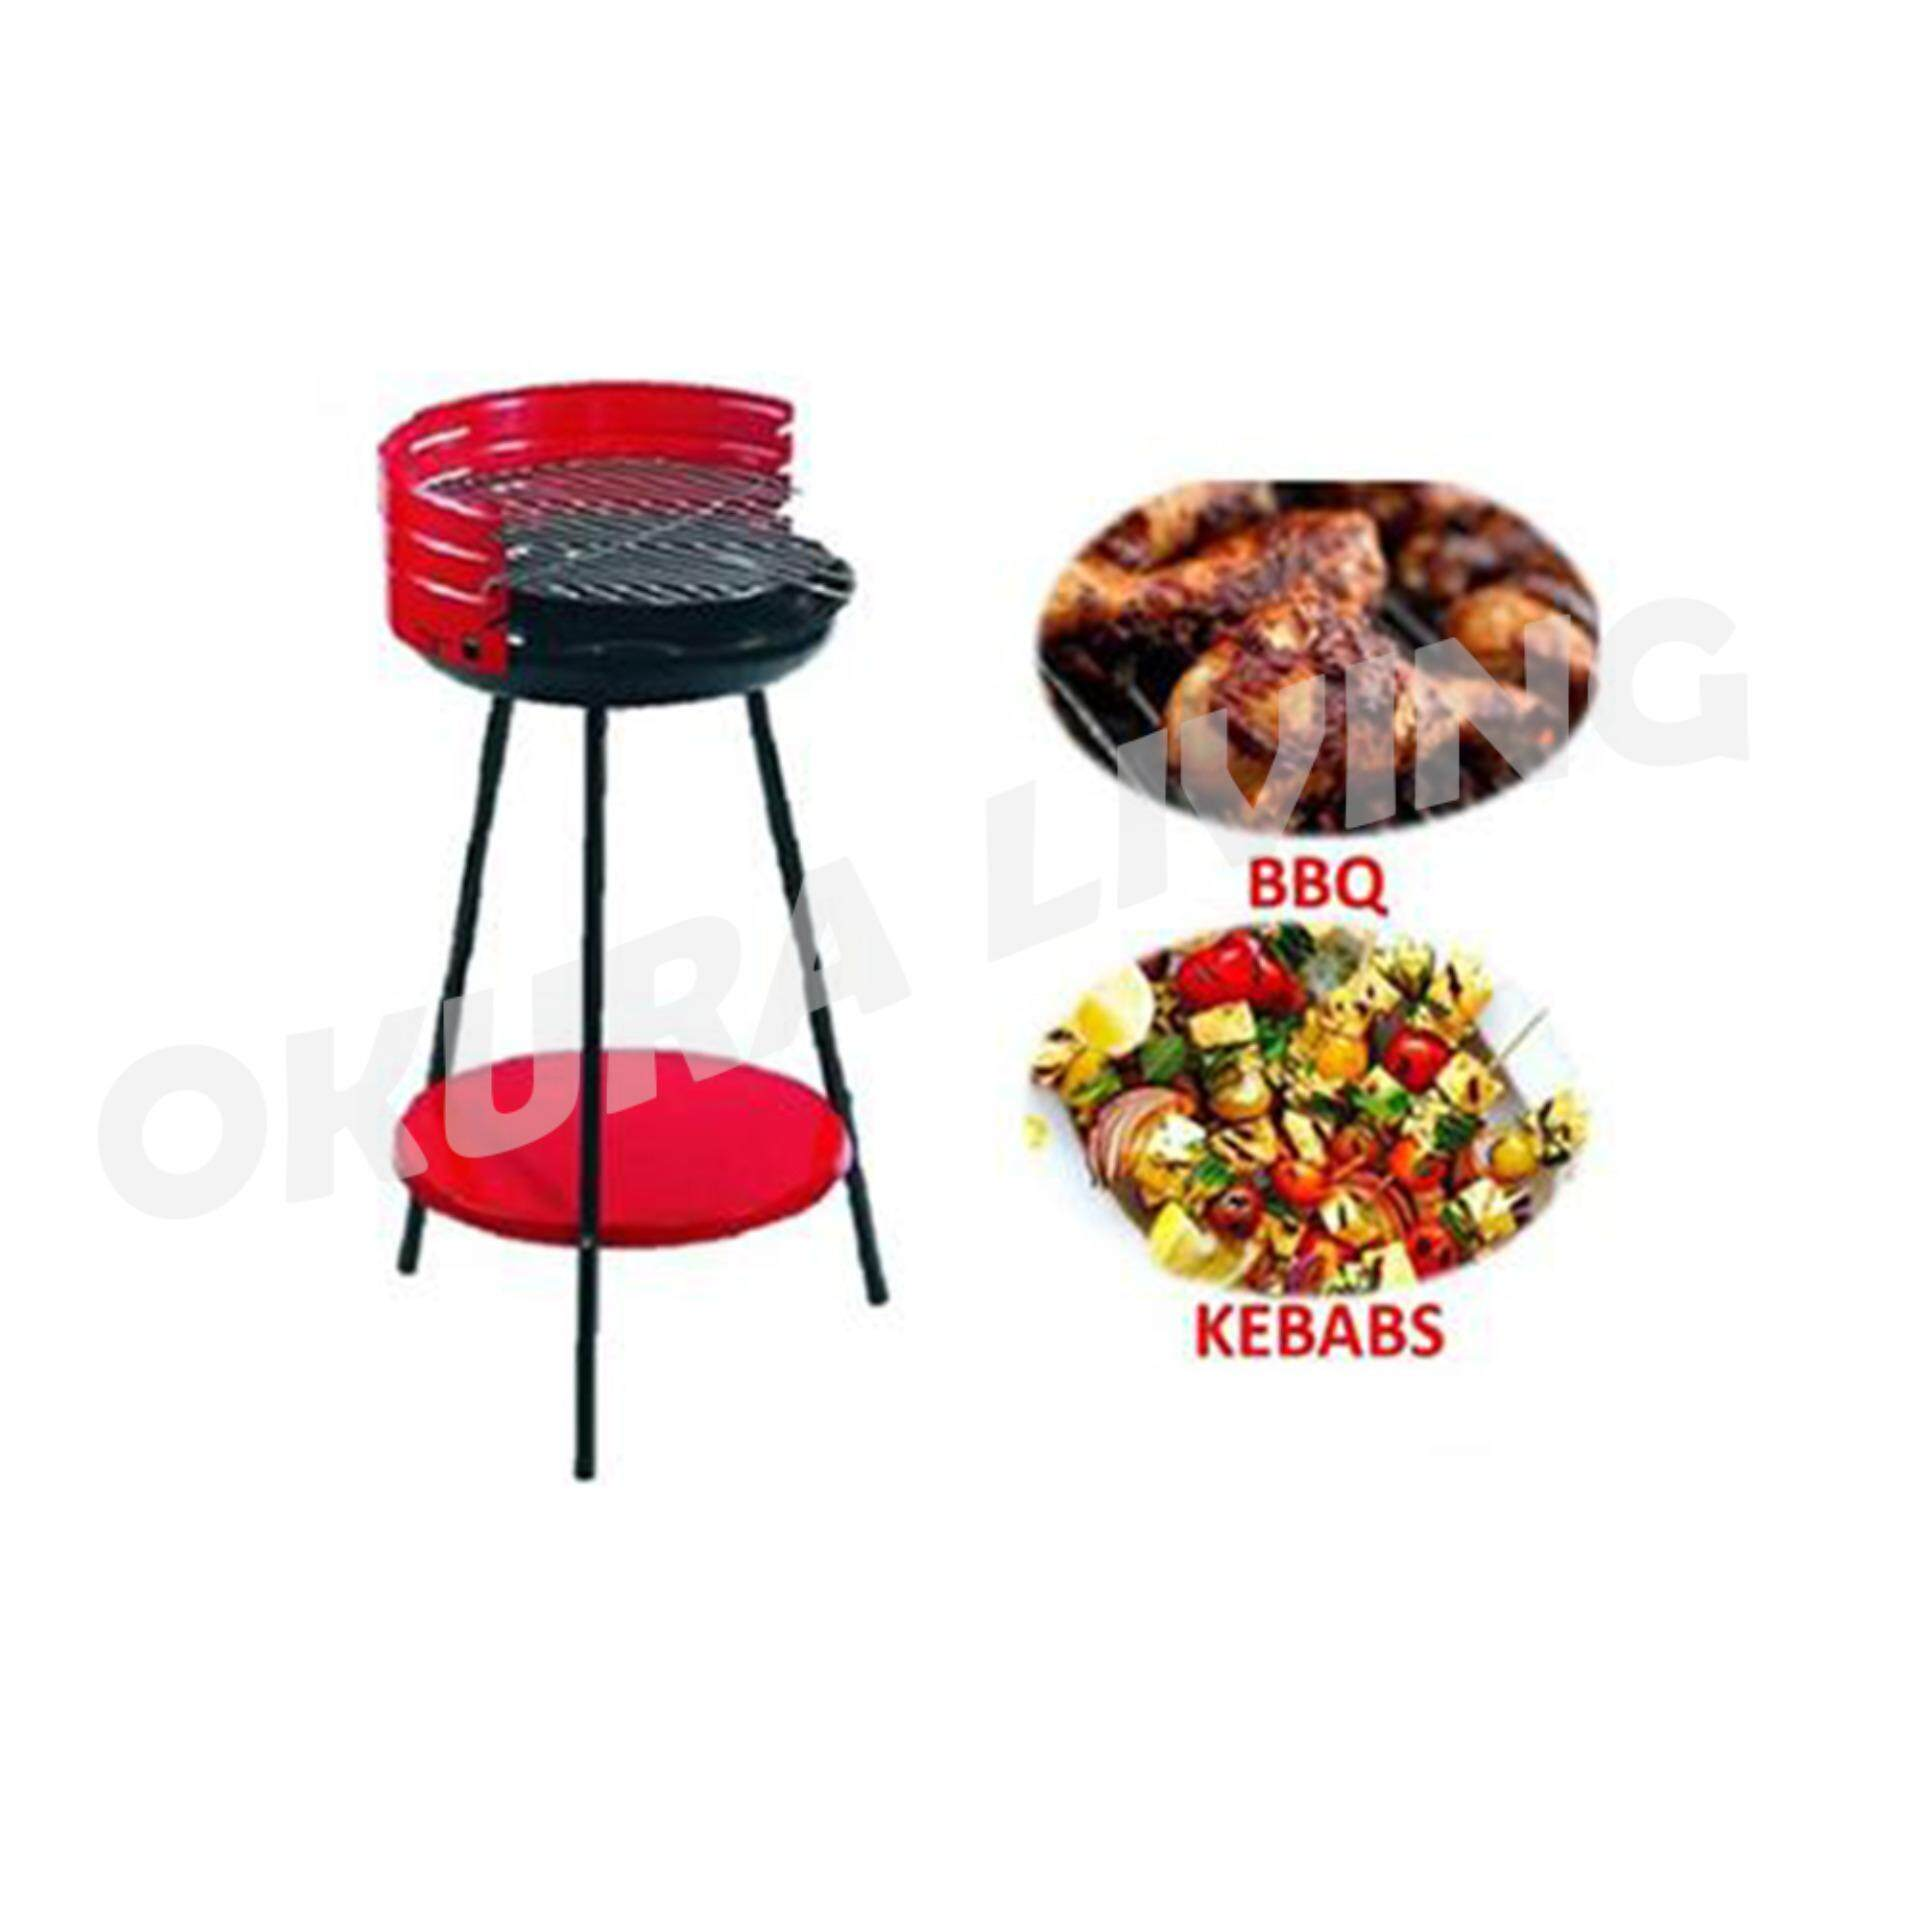 OKURA Portable Outdoor Charcoal BBQ Grill Set Barbecue